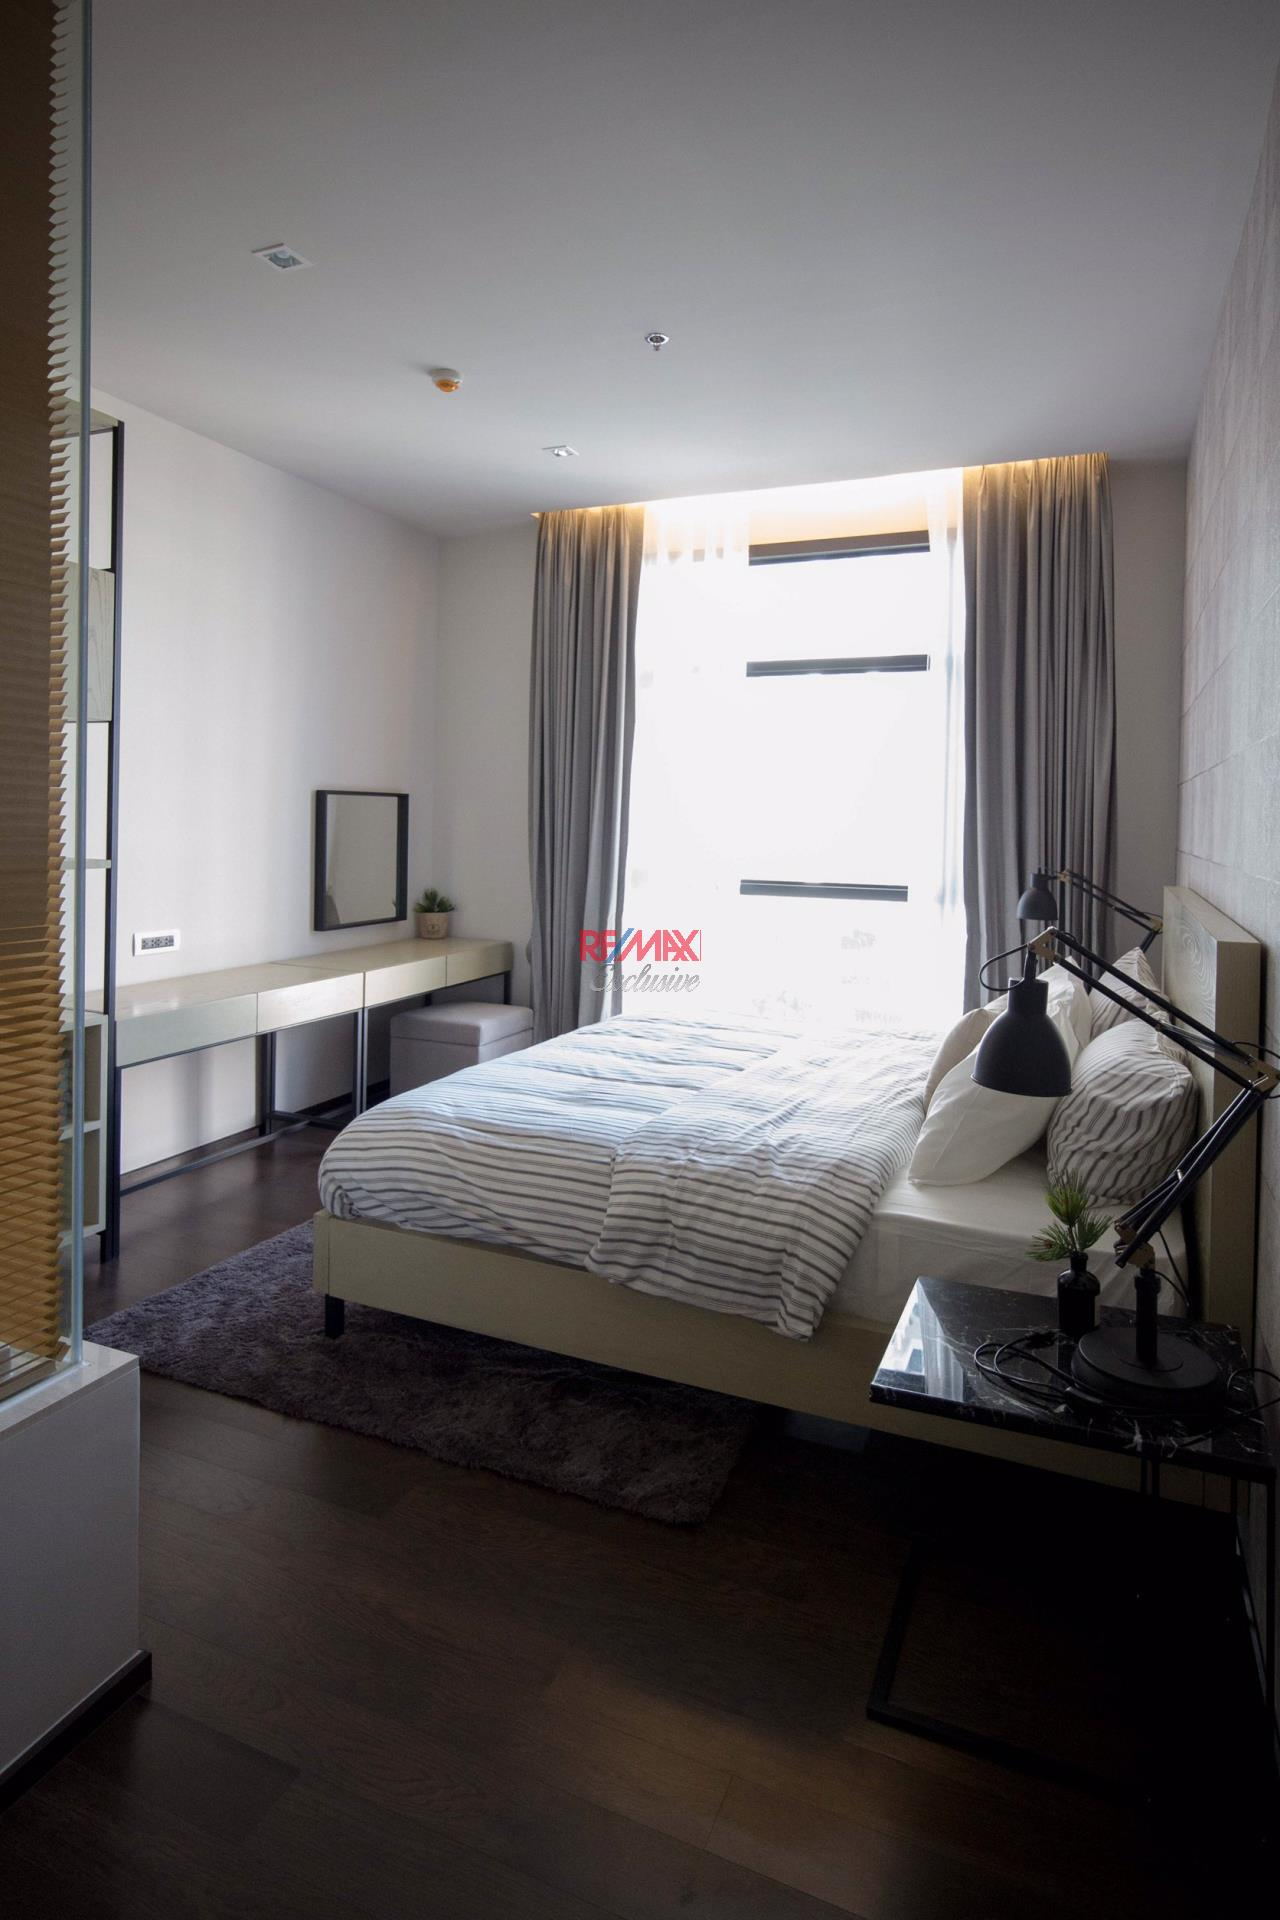 RE/MAX Exclusive Agency's XXXIX By Sansiri 1 Bedroom 58 Sqm., For Rent 75,000 and Sale 18,000,000 THB!! 8